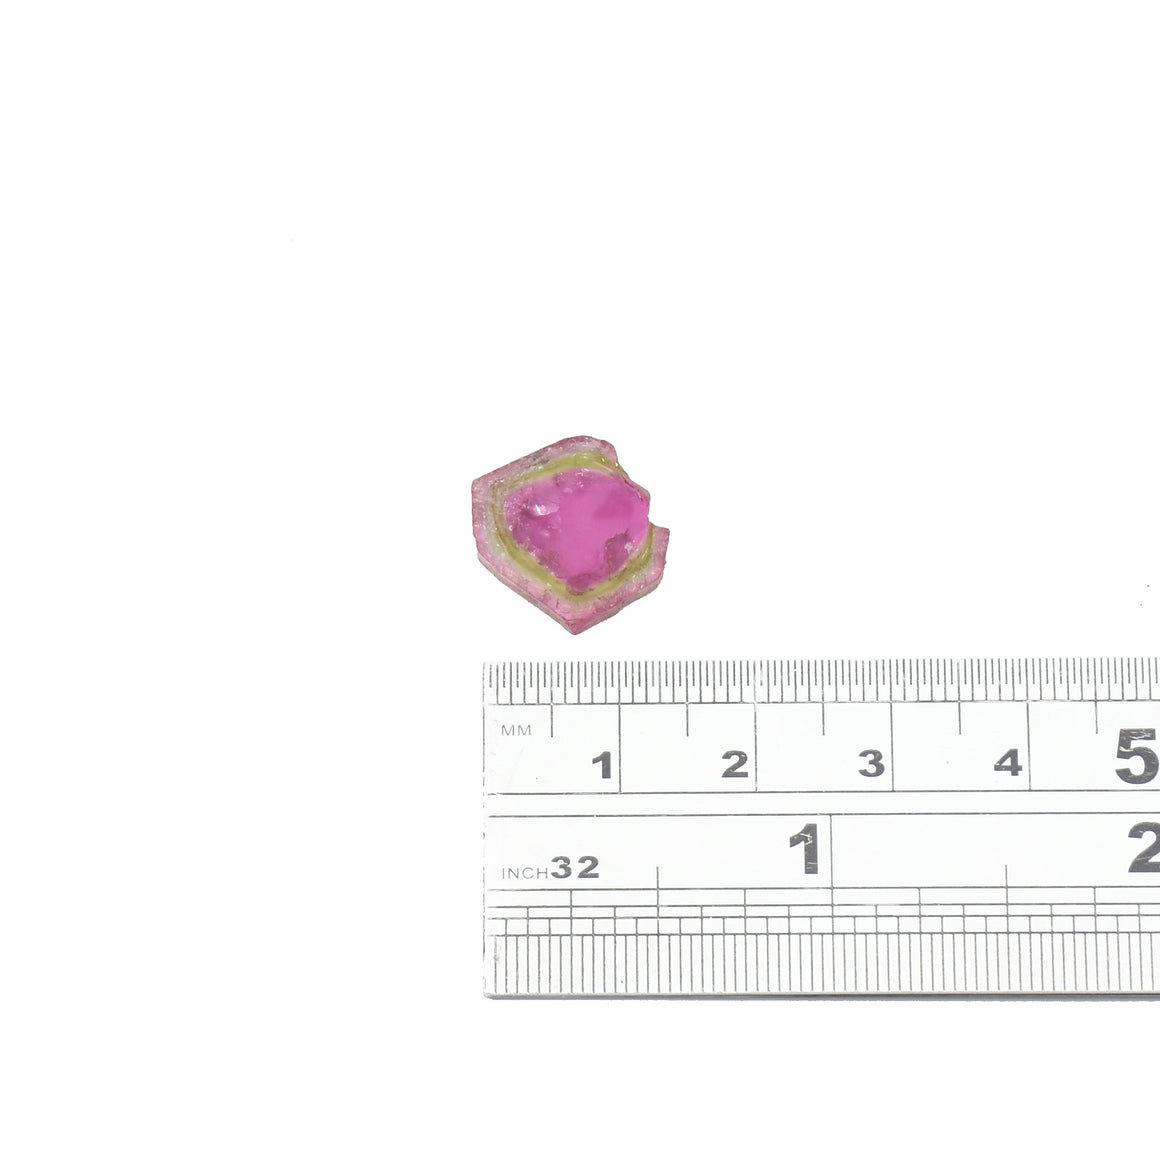 5.9ct Light green edge, dark pink center